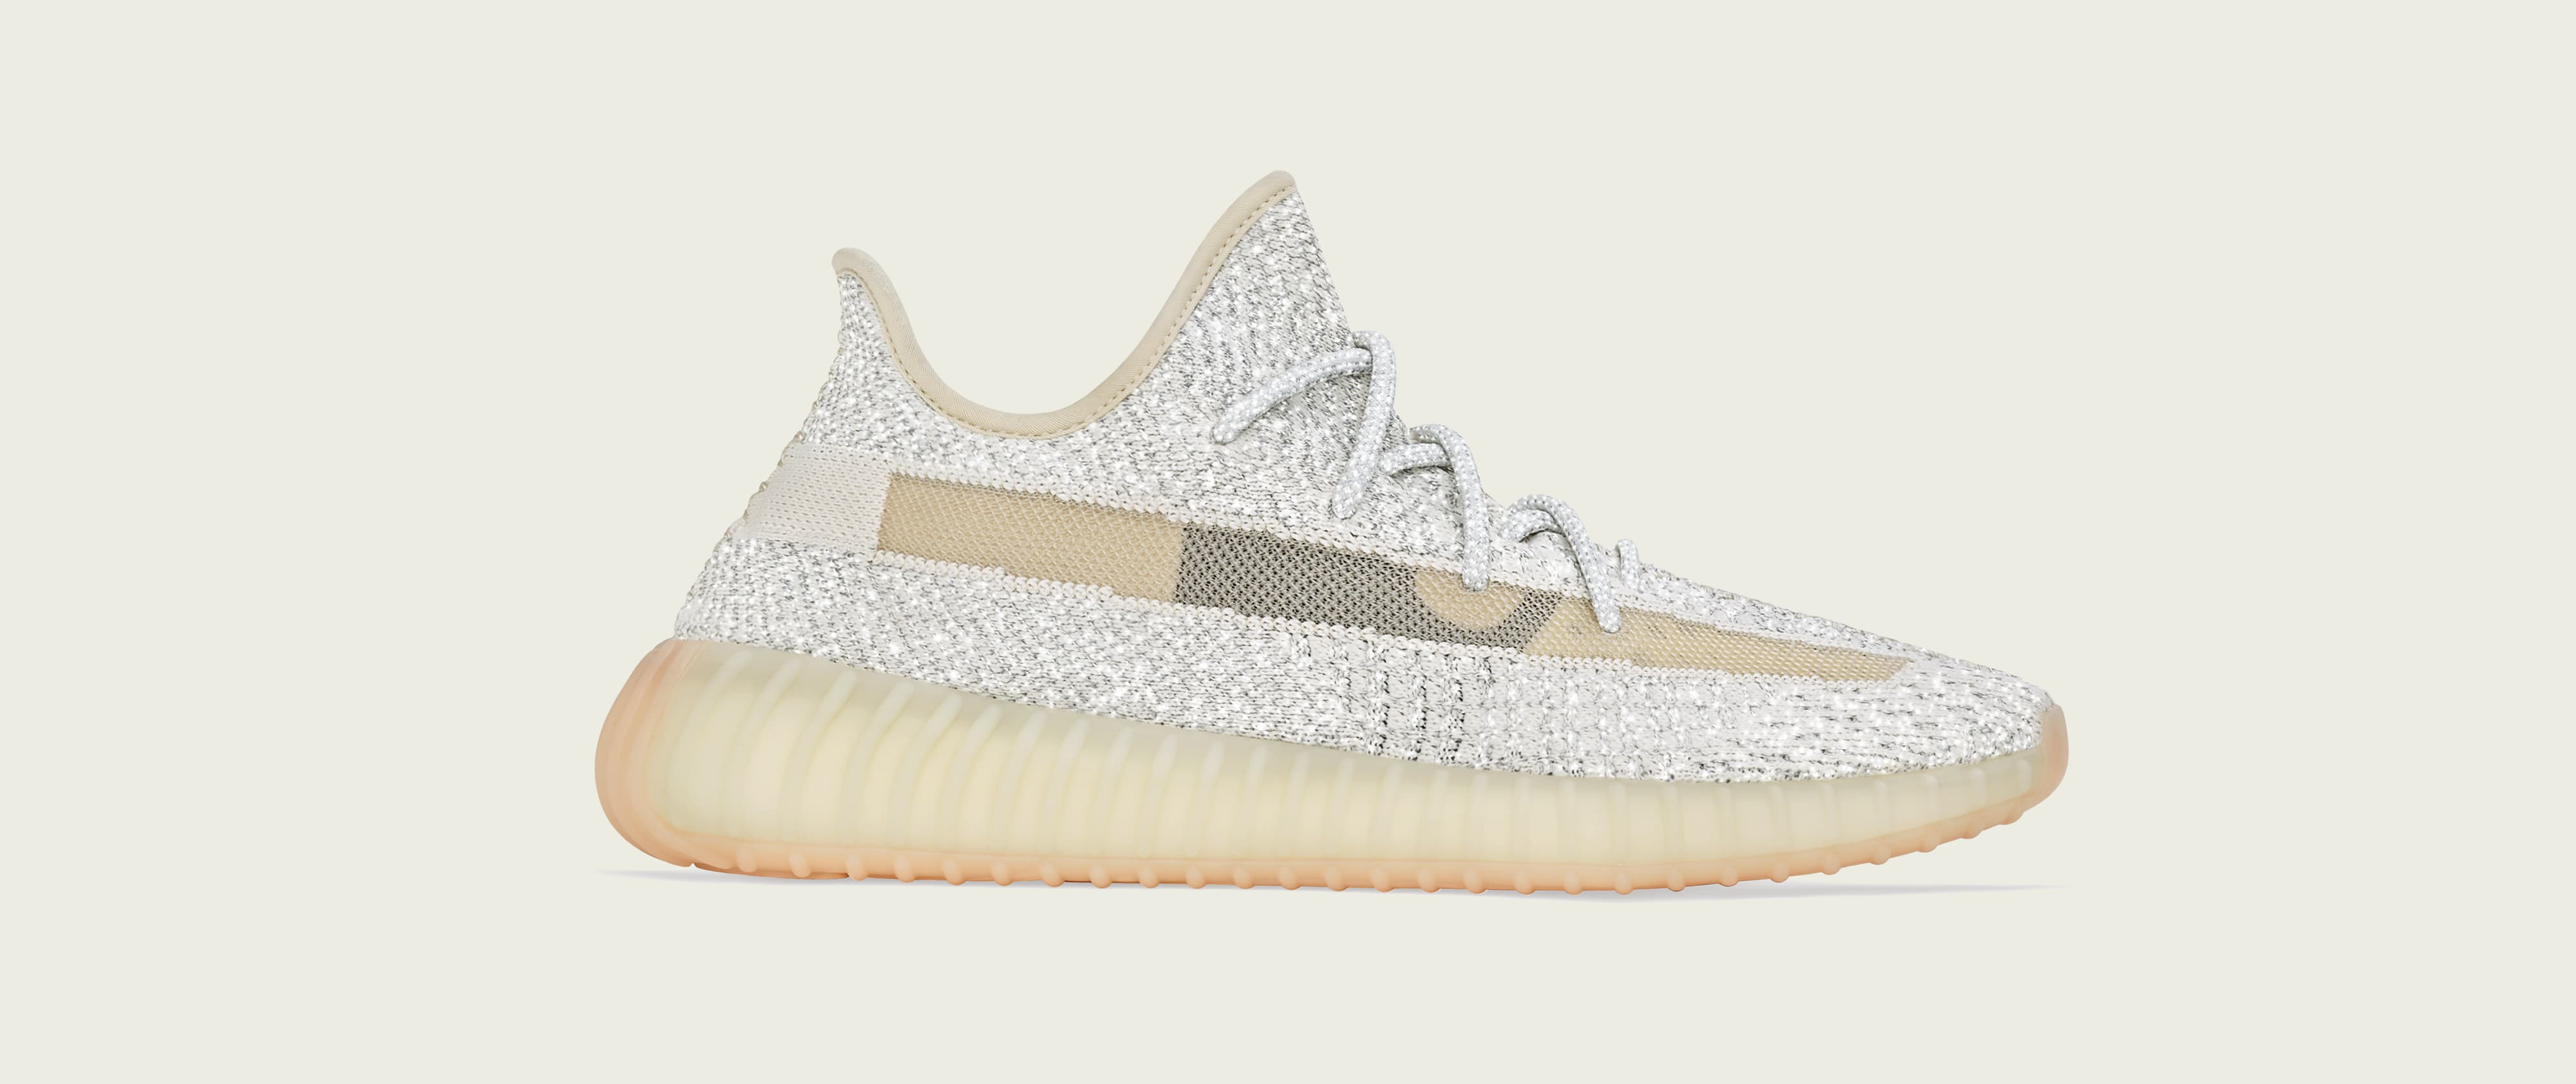 Adidas Yeezy Boost 350 V2 'Lundmark/Reflective' (Lateral)